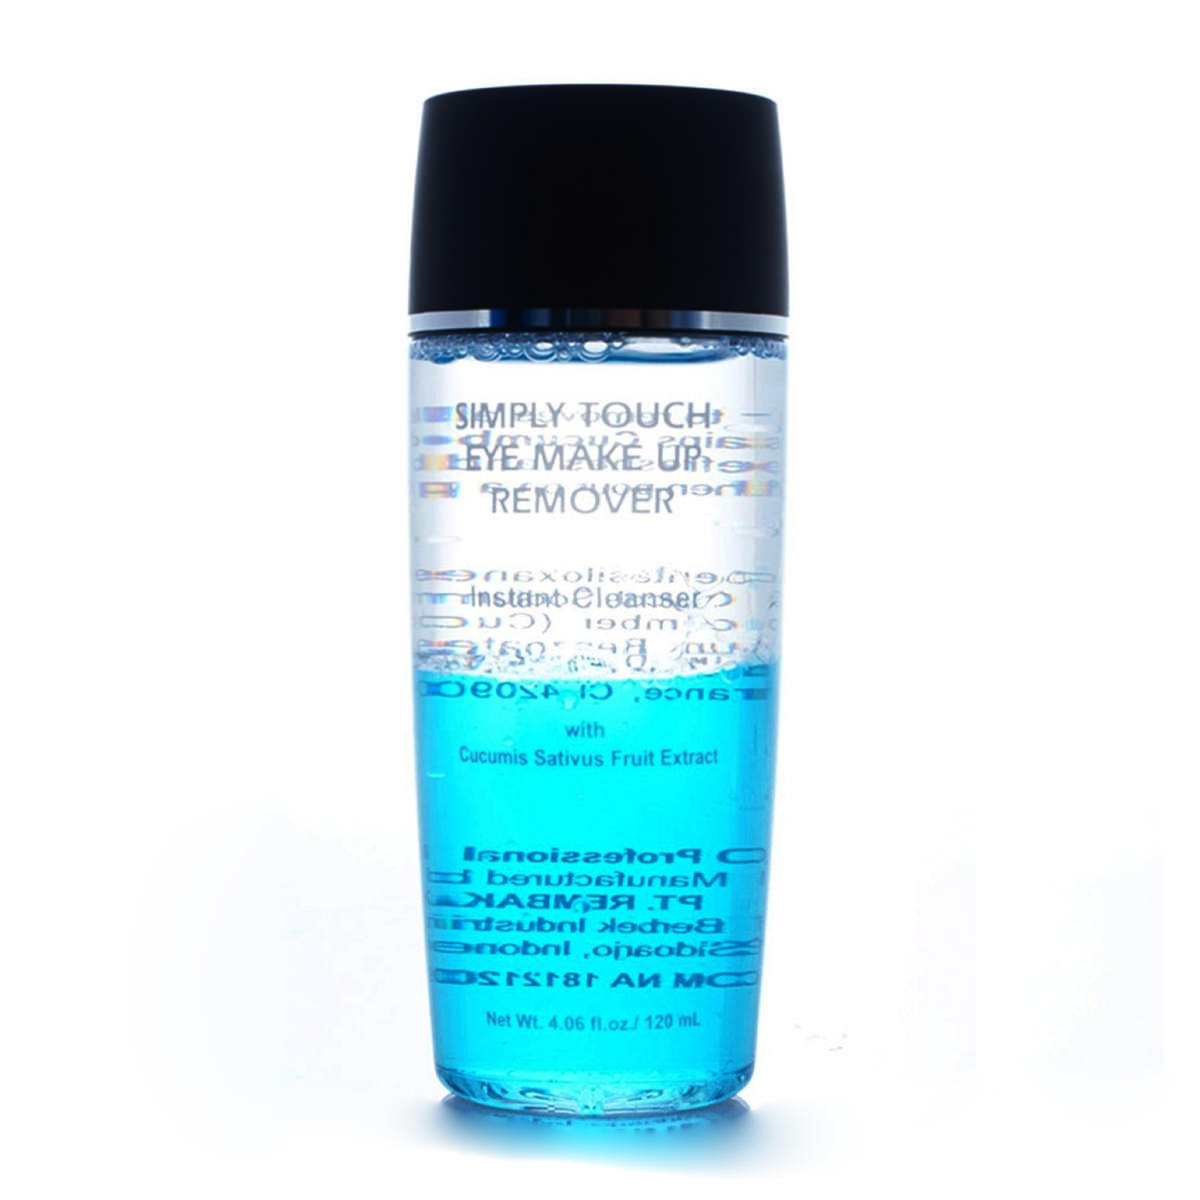 LT-Pro---Simply-Touch-Eye-Make-Up-Remover-(120-ml)-sfw(1)